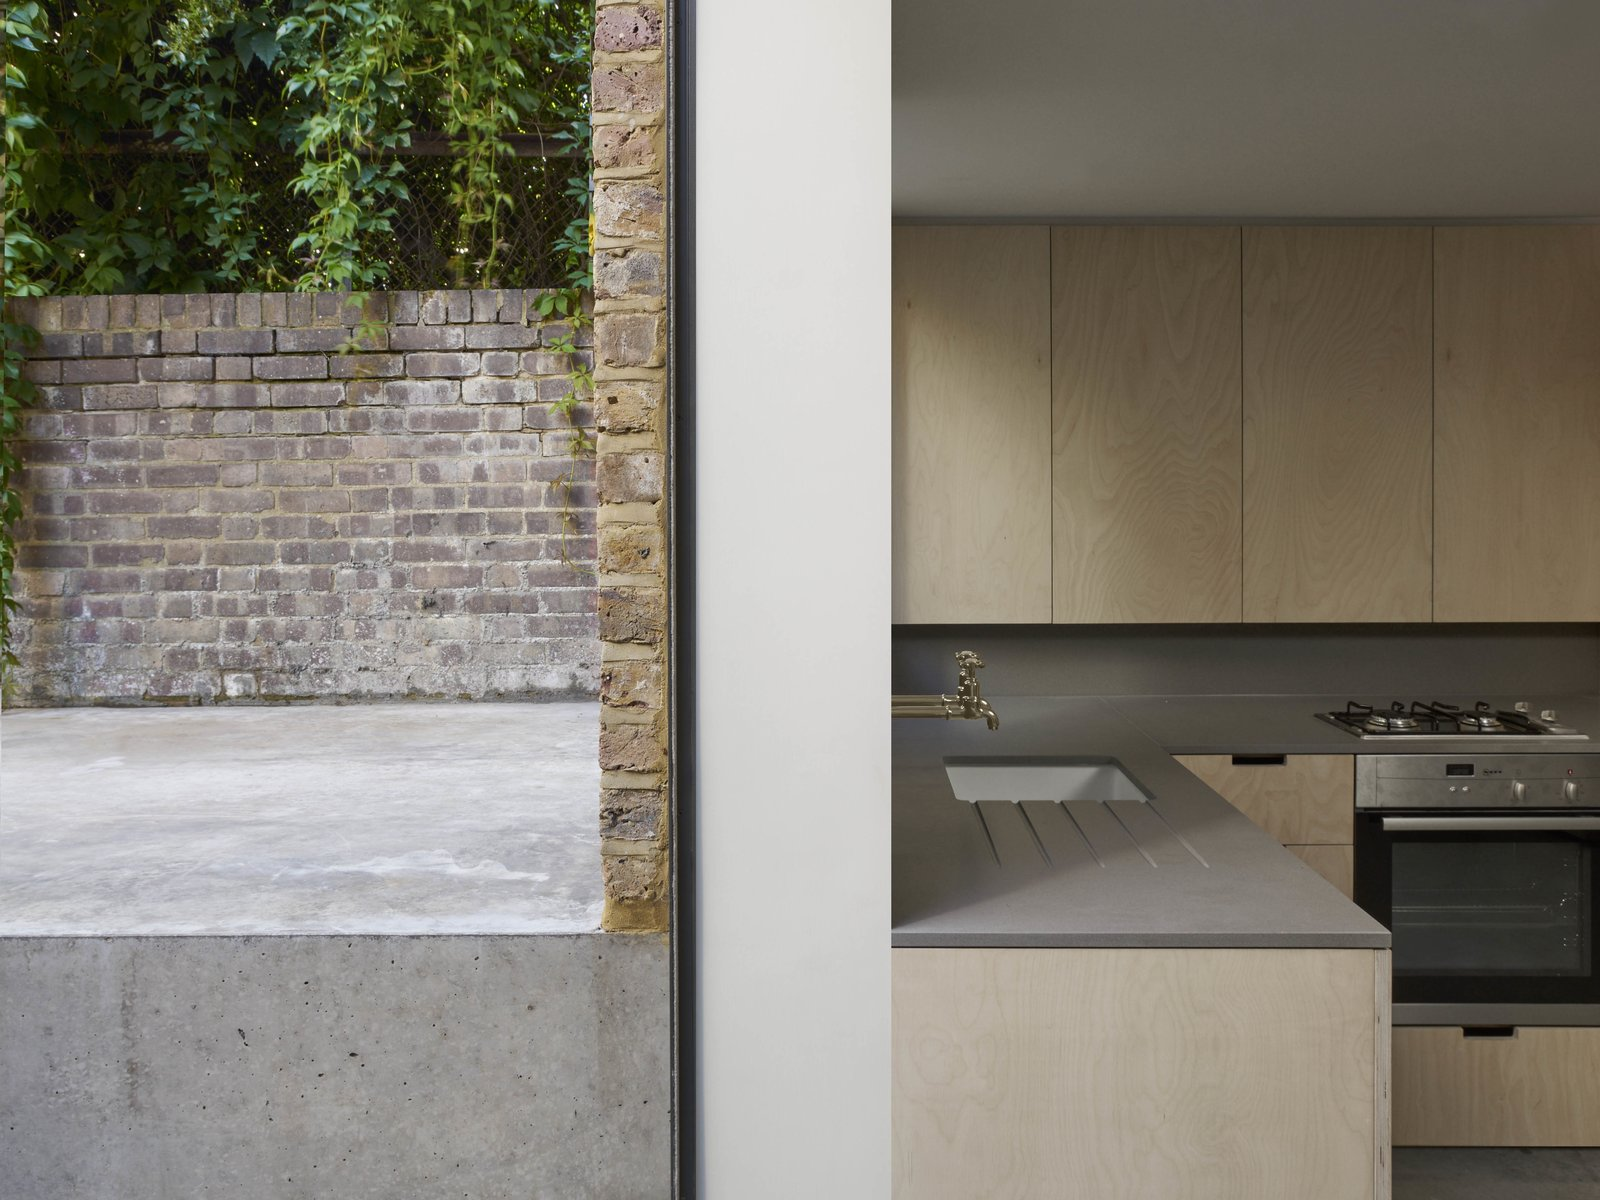 Tagged: Kitchen. A Once-Derelict London House Restored With Modern Elegance - Photo 4 of 10